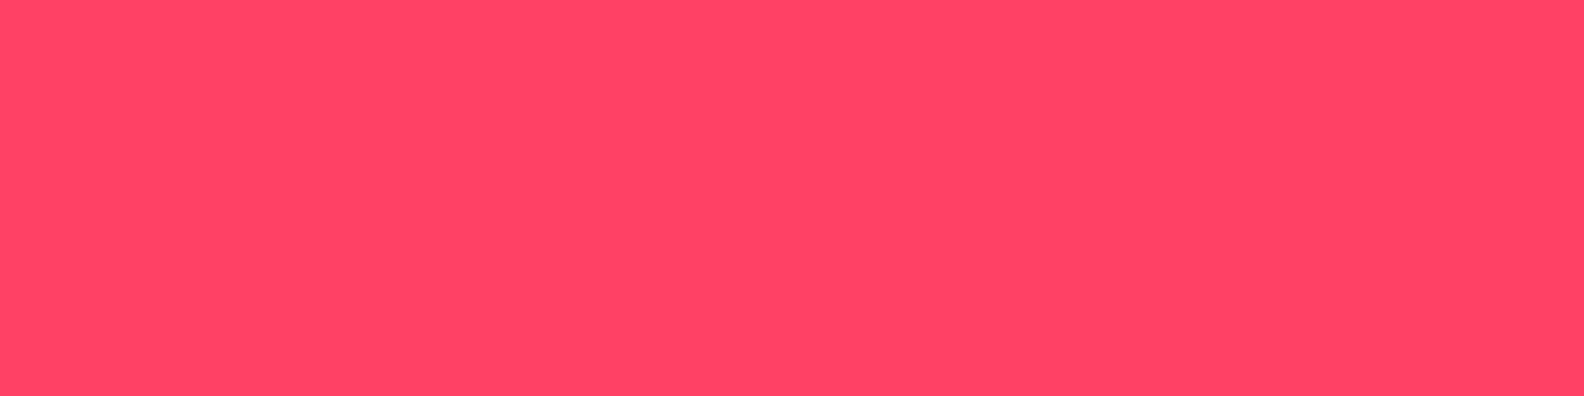 1584x396 Neon Fuchsia Solid Color Background